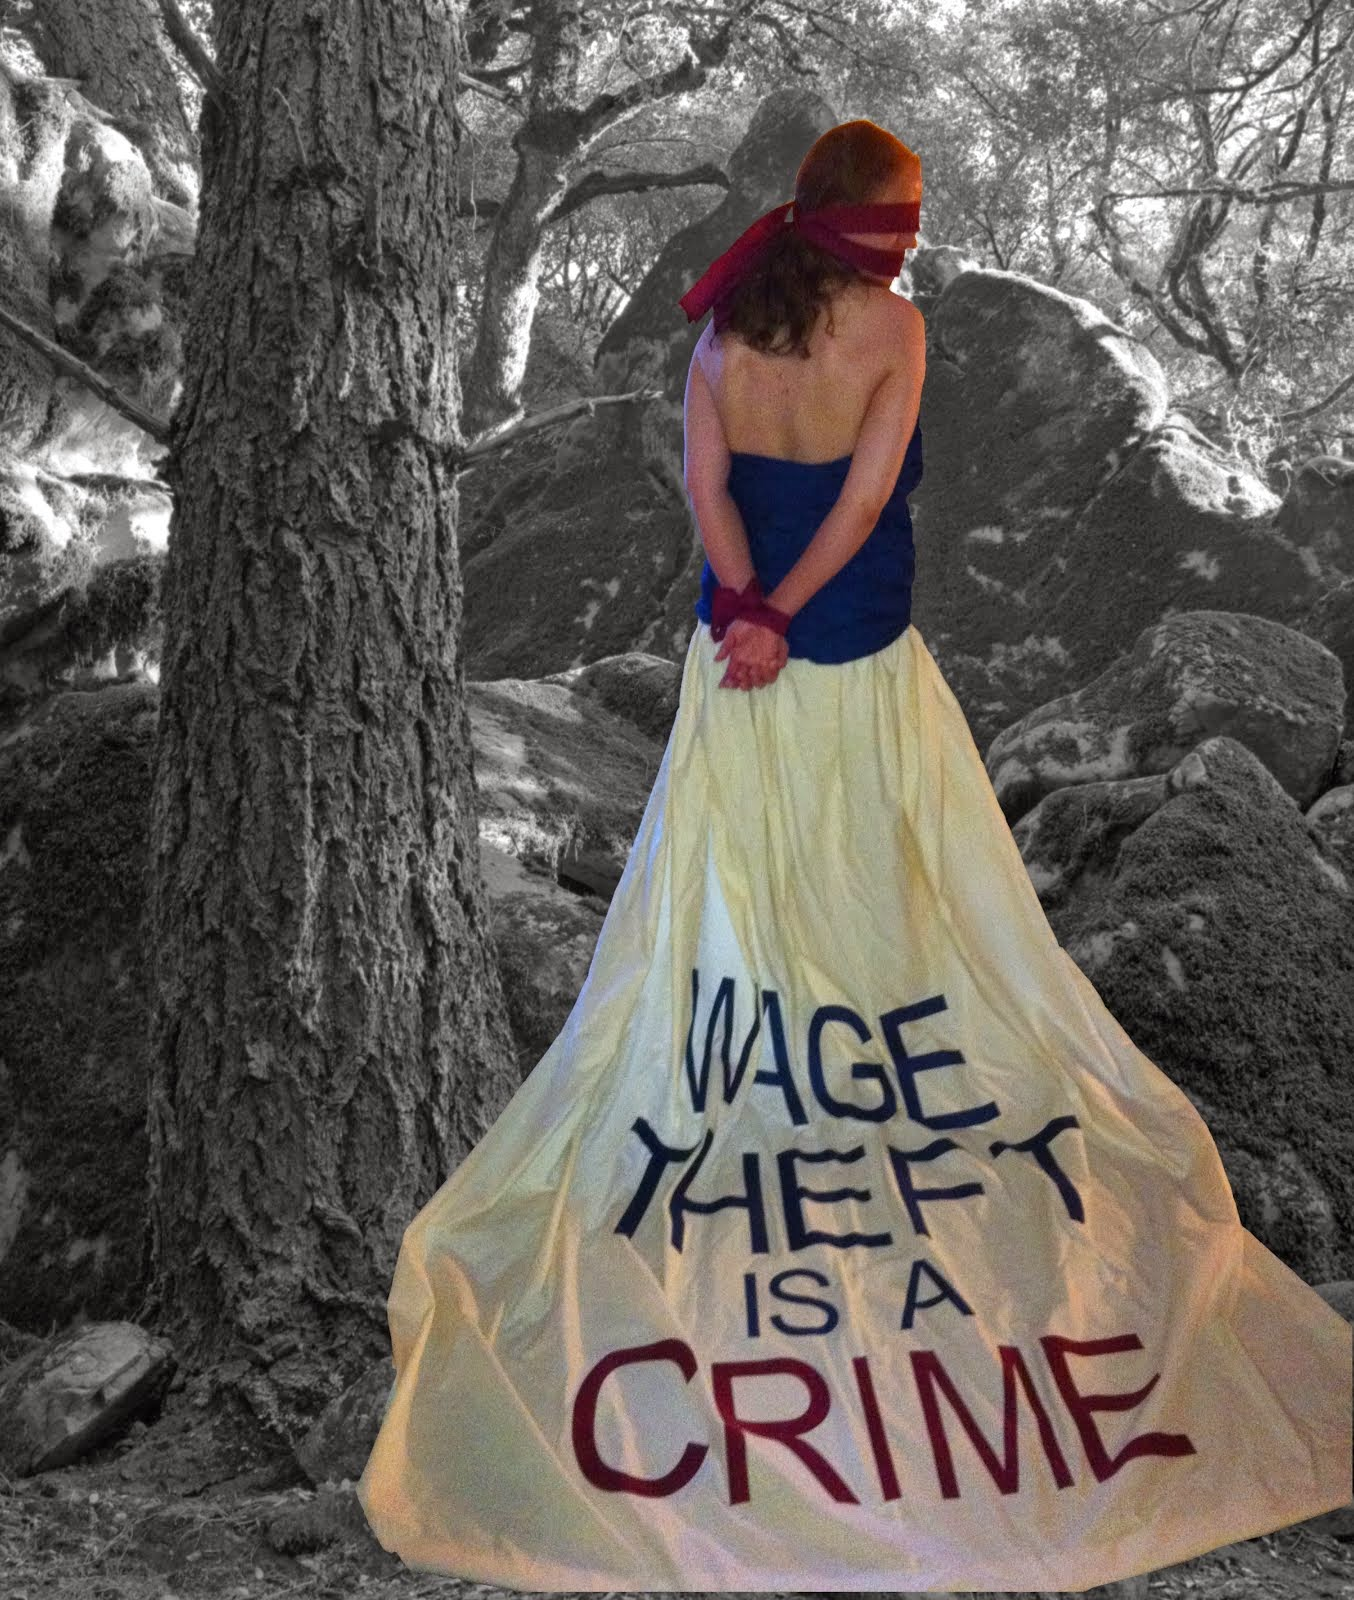 My Wage Theft Wedding Dress